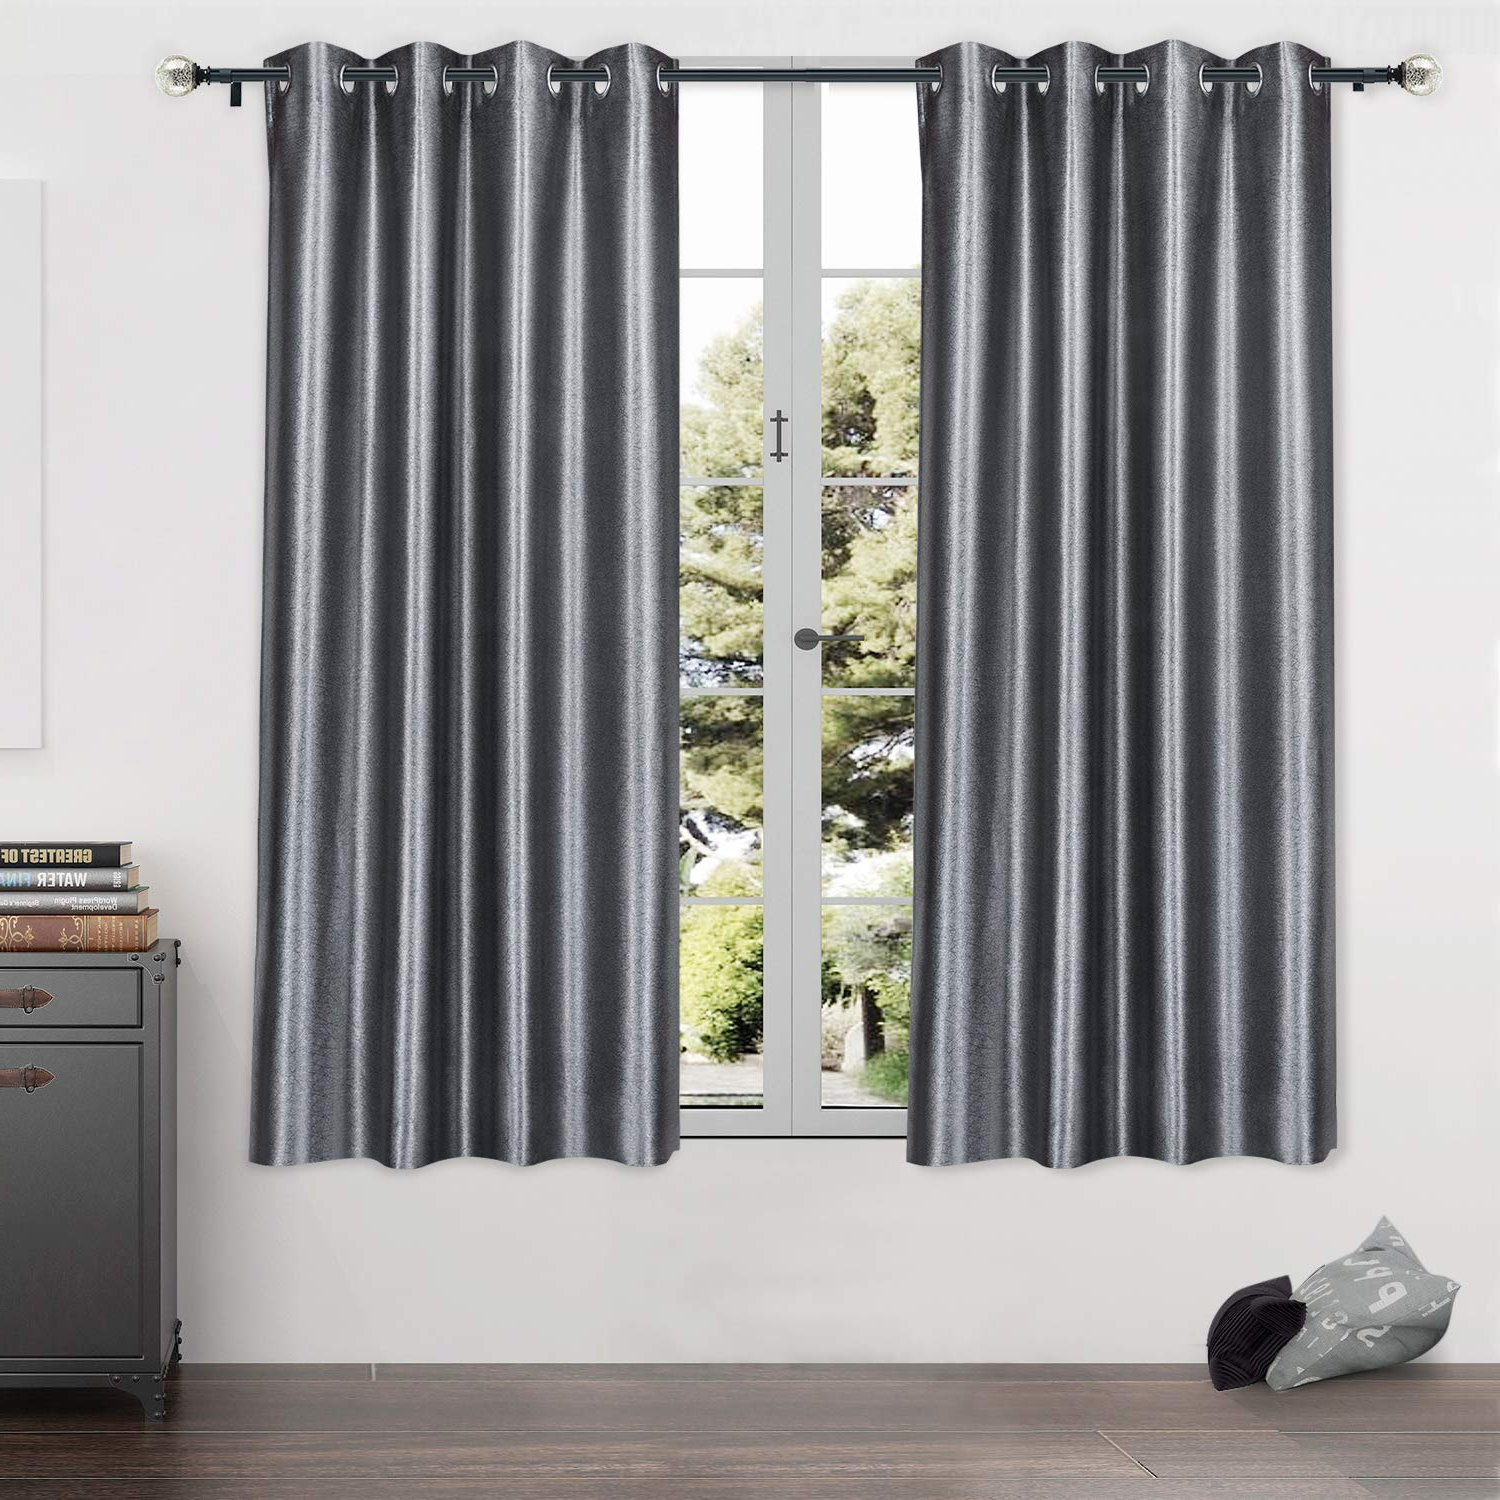 Blackout Grommet Curtain Panels Regarding Most Recently Released Kamanina Blackout Curtain Panels Grommet Window Curtains For Room  Darkening, Thermal Insulated Blackout Window Drapes, 2 Panels Set (Grey, 52  X  (View 5 of 20)